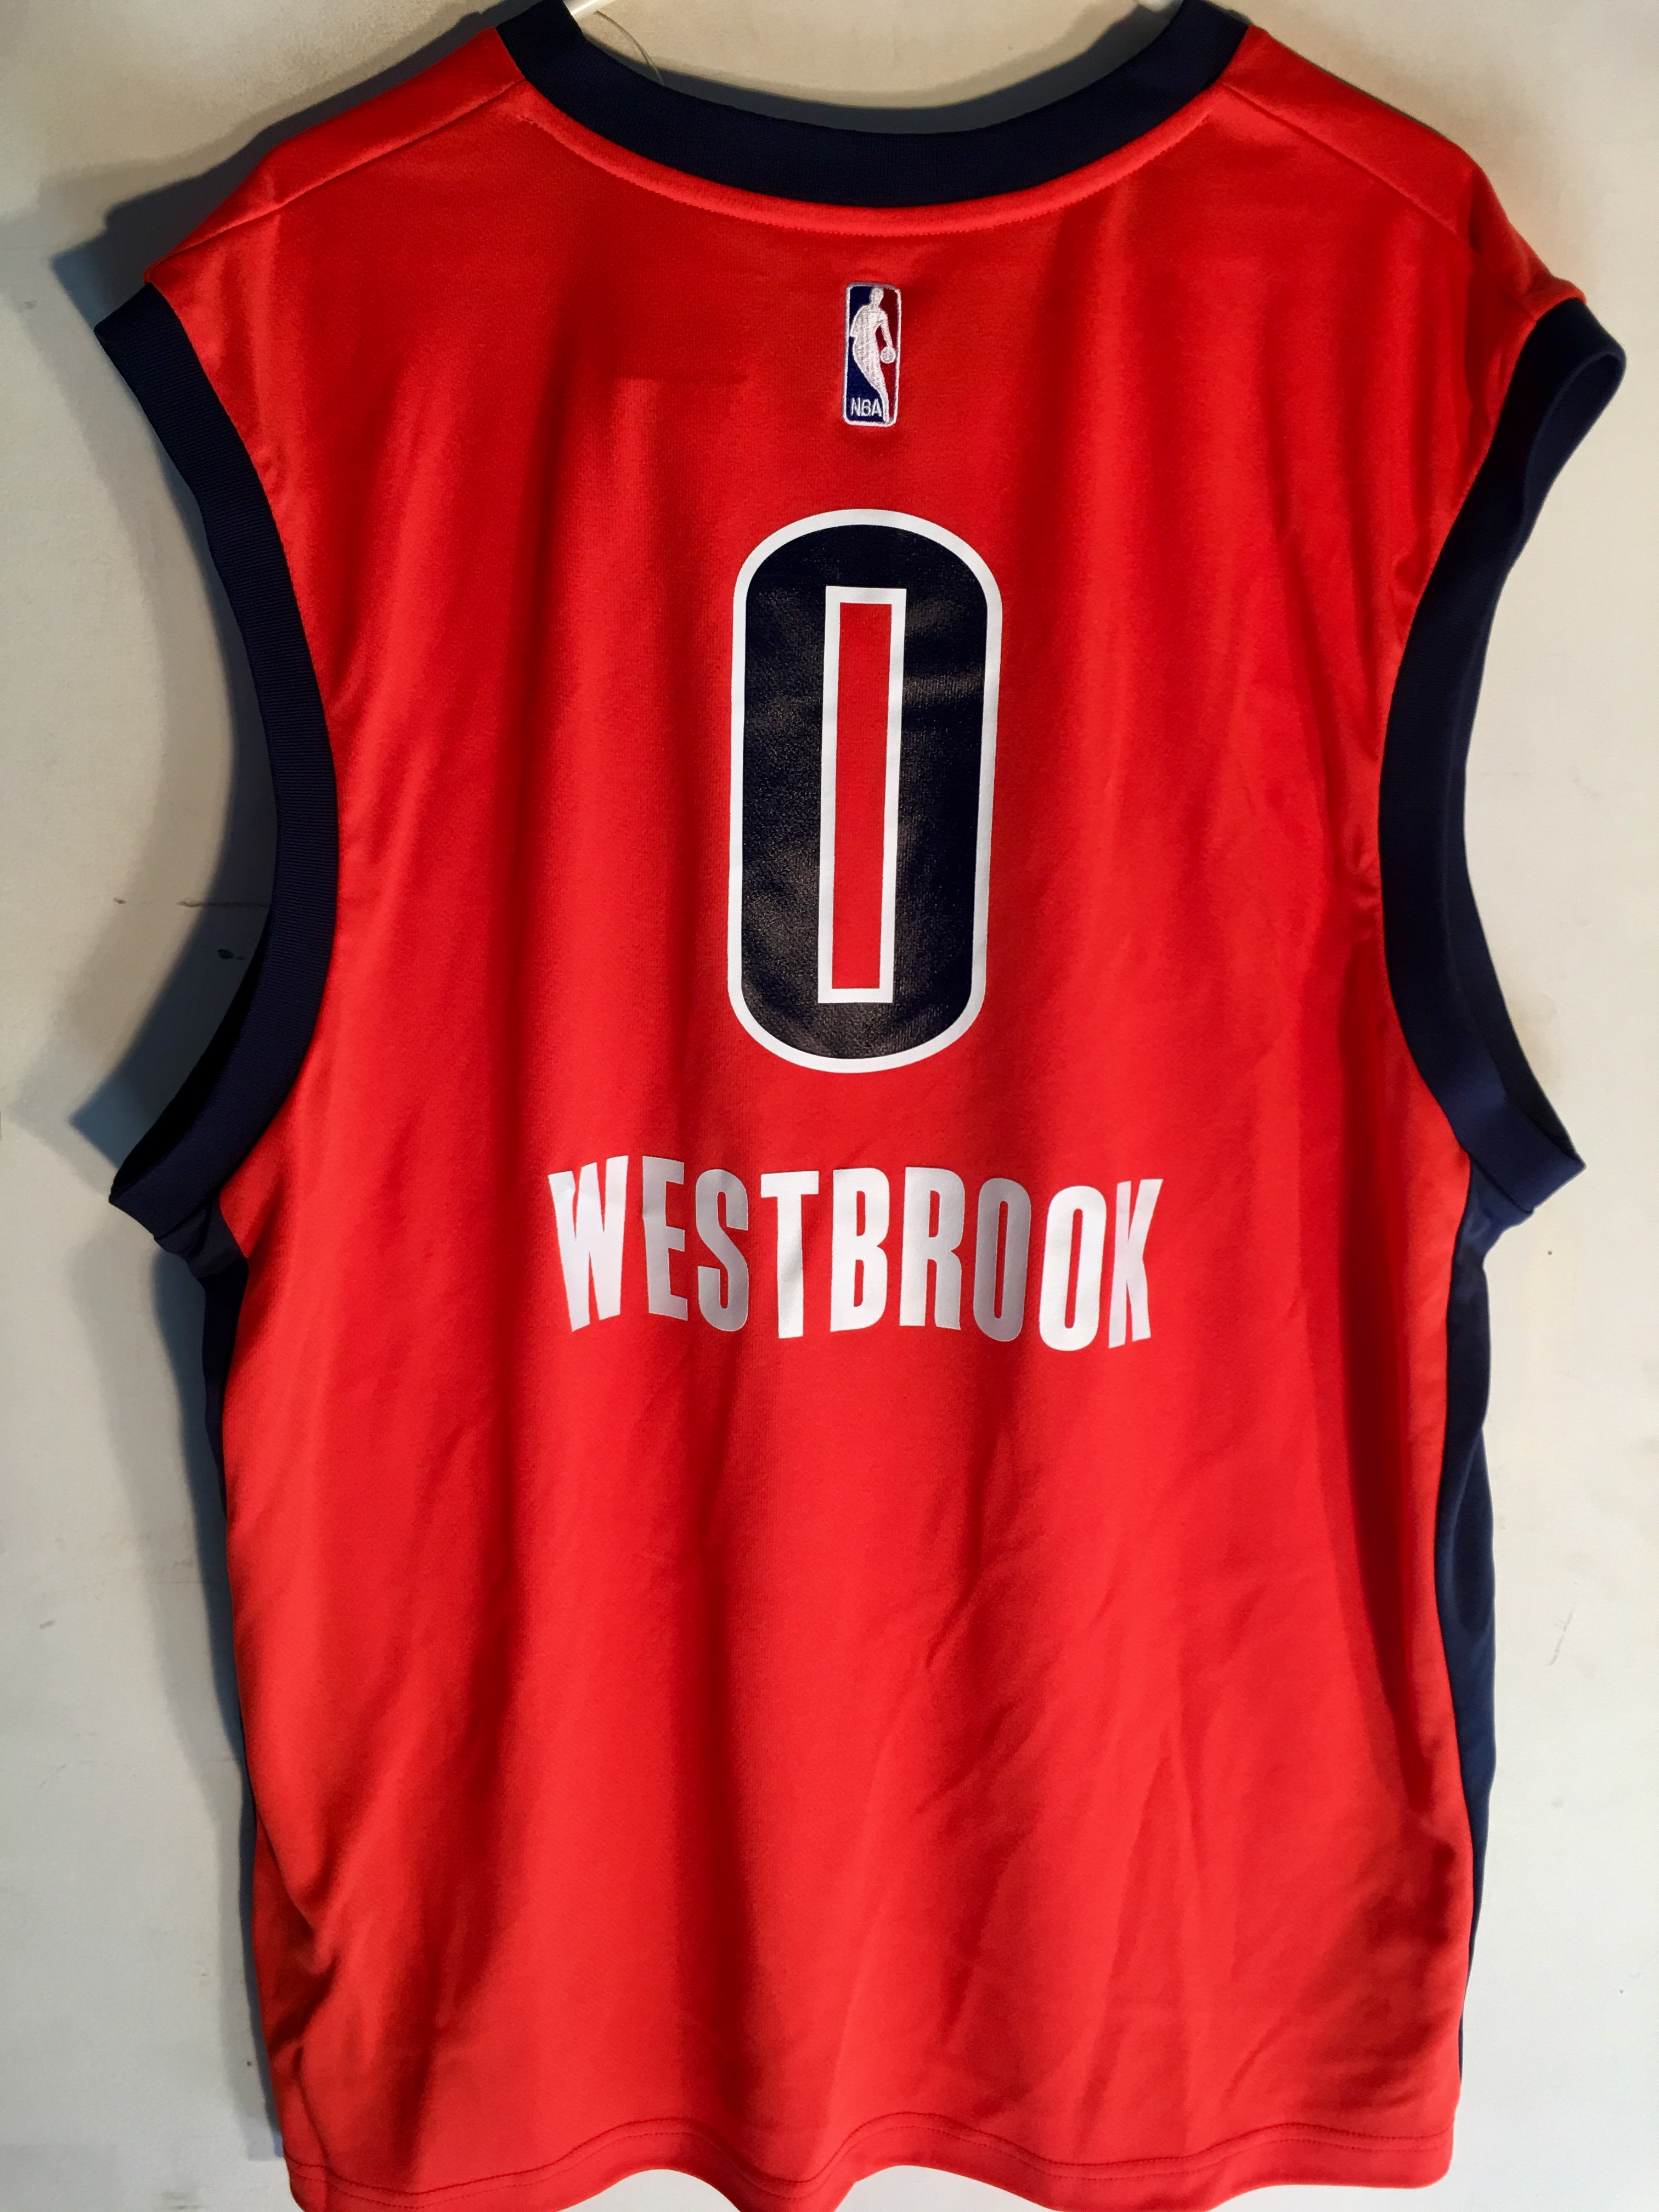 release date 7454f ae4e2 Details about Adidas NBA Jersey Oklahoma City Thunder Russell Westbrook  Orange sz 2X